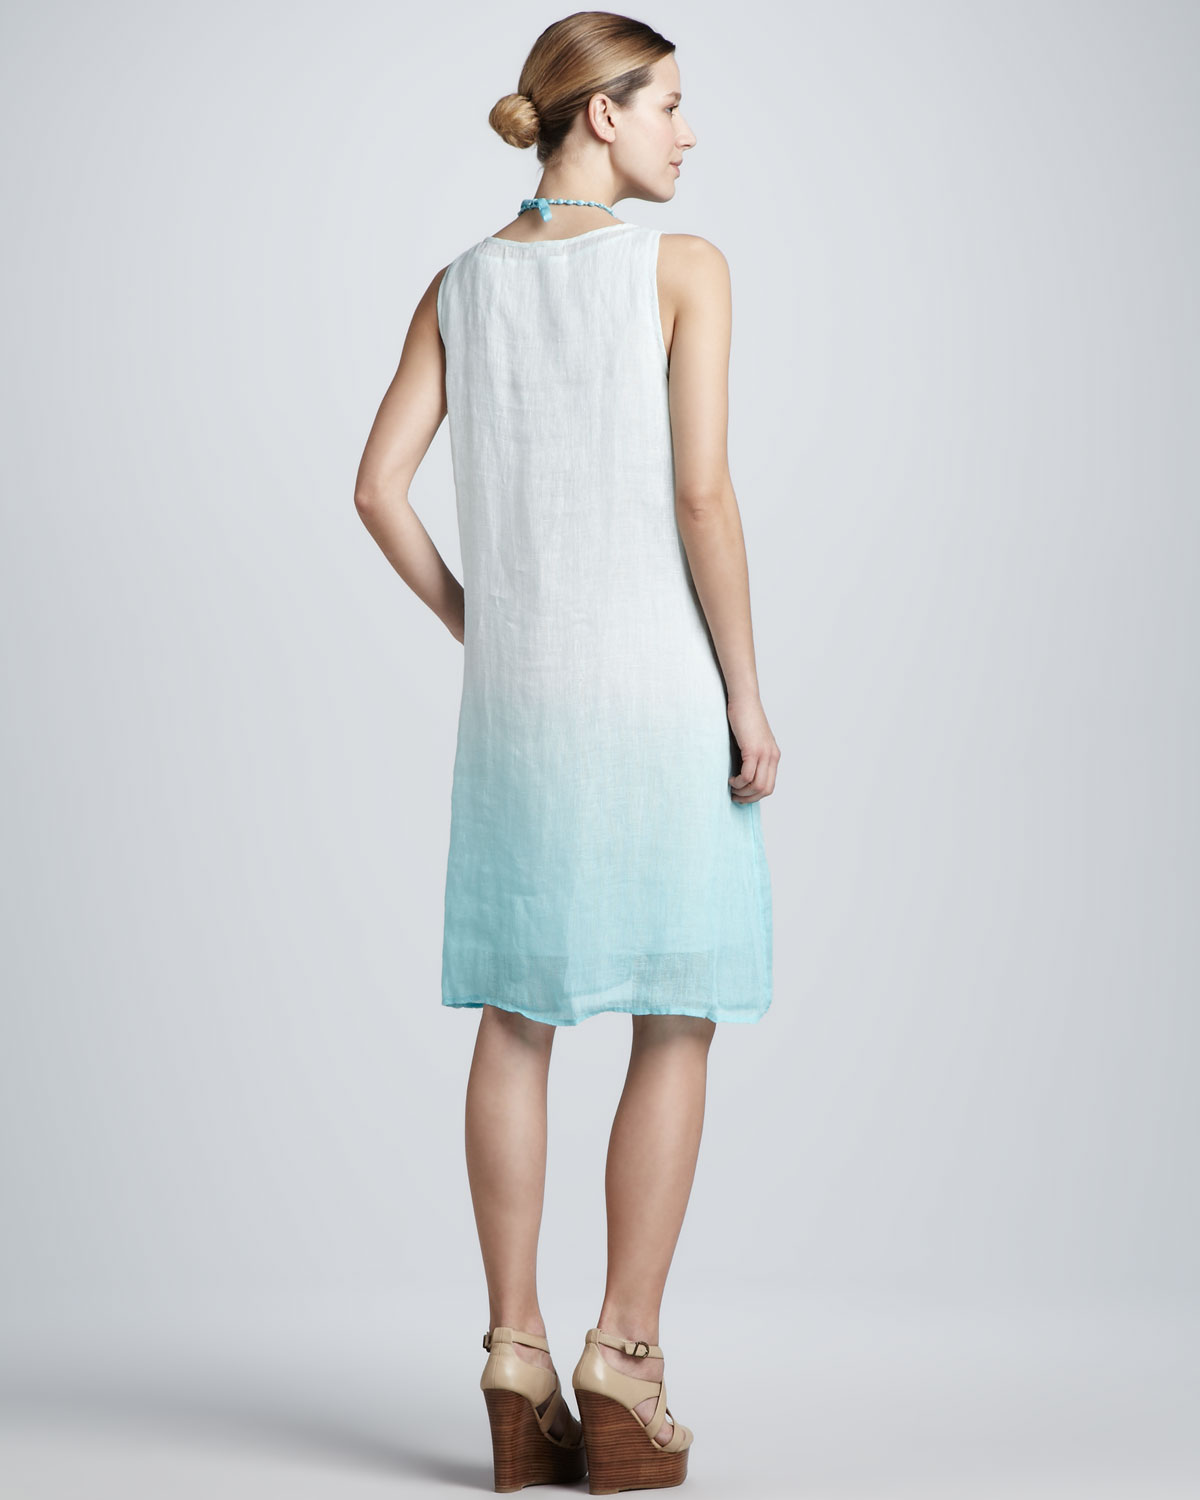 d63cb4f643 Lyst - Eileen Fisher Ombre Layered Linen Dress in Blue